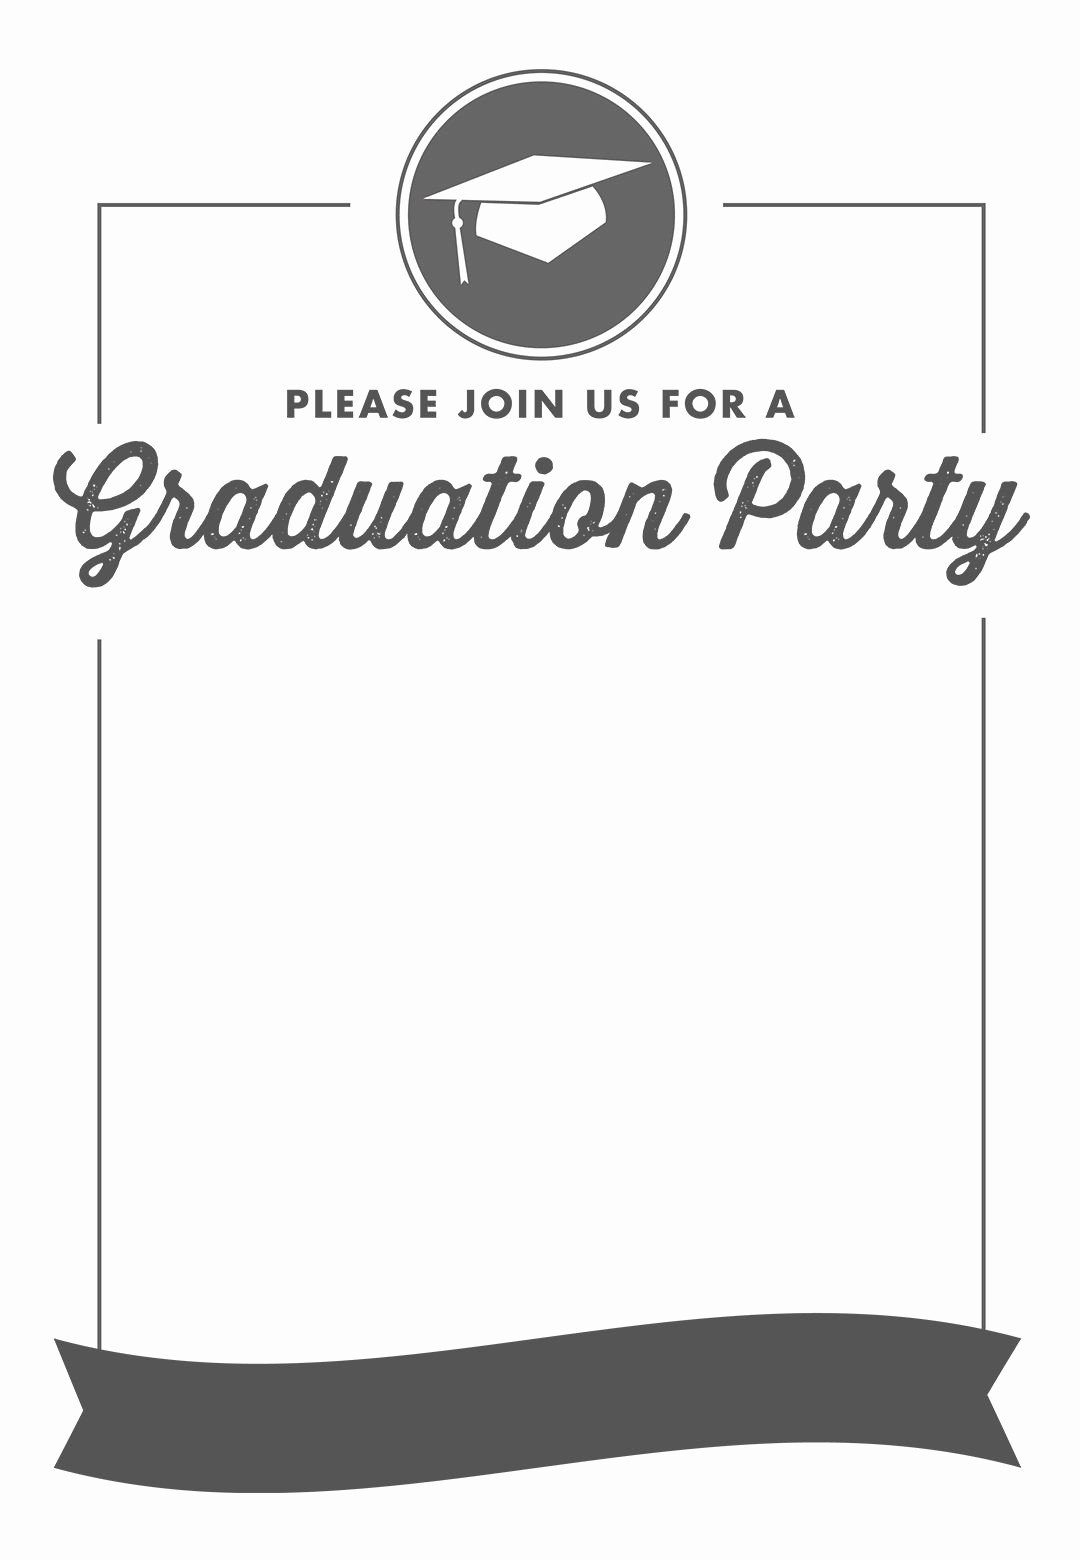 Free Graduation Party Invitations Templates Elegant Ribbon Graduation Free Printable Graduation Party